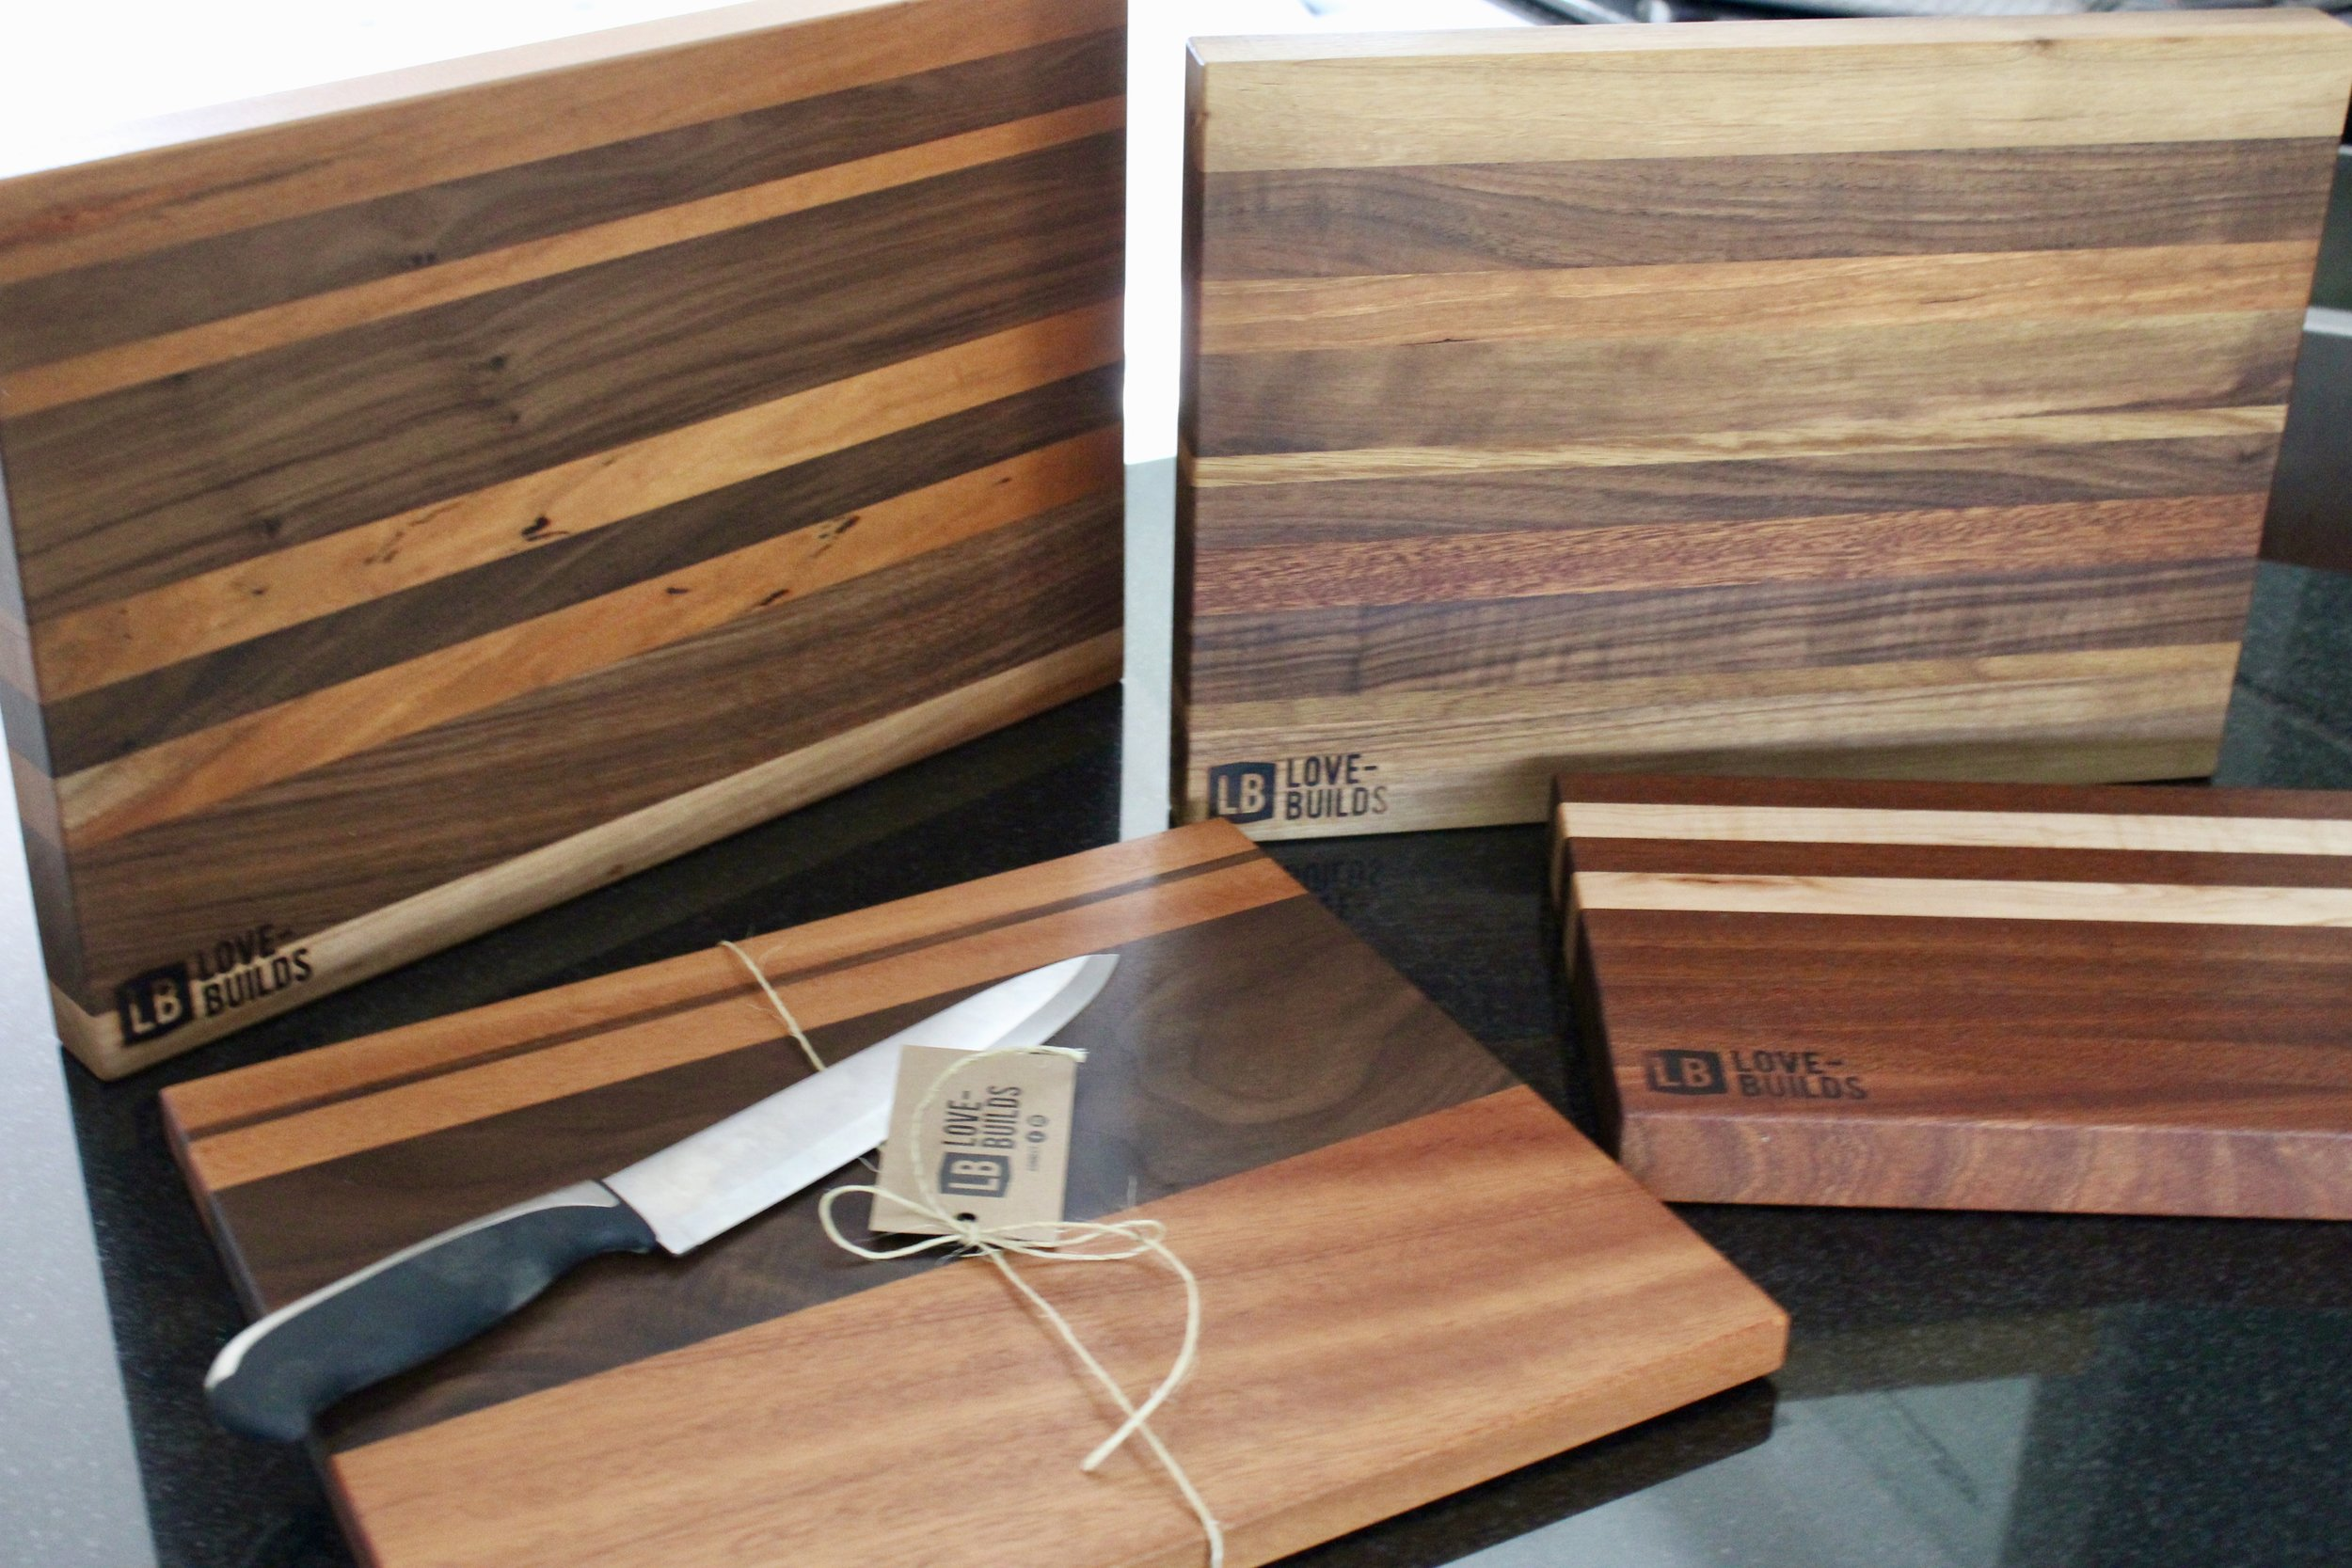 CARVING/SERVING BOARDS - Beautiful, thick boards uniquely crafted together and perfect for carving and serving.